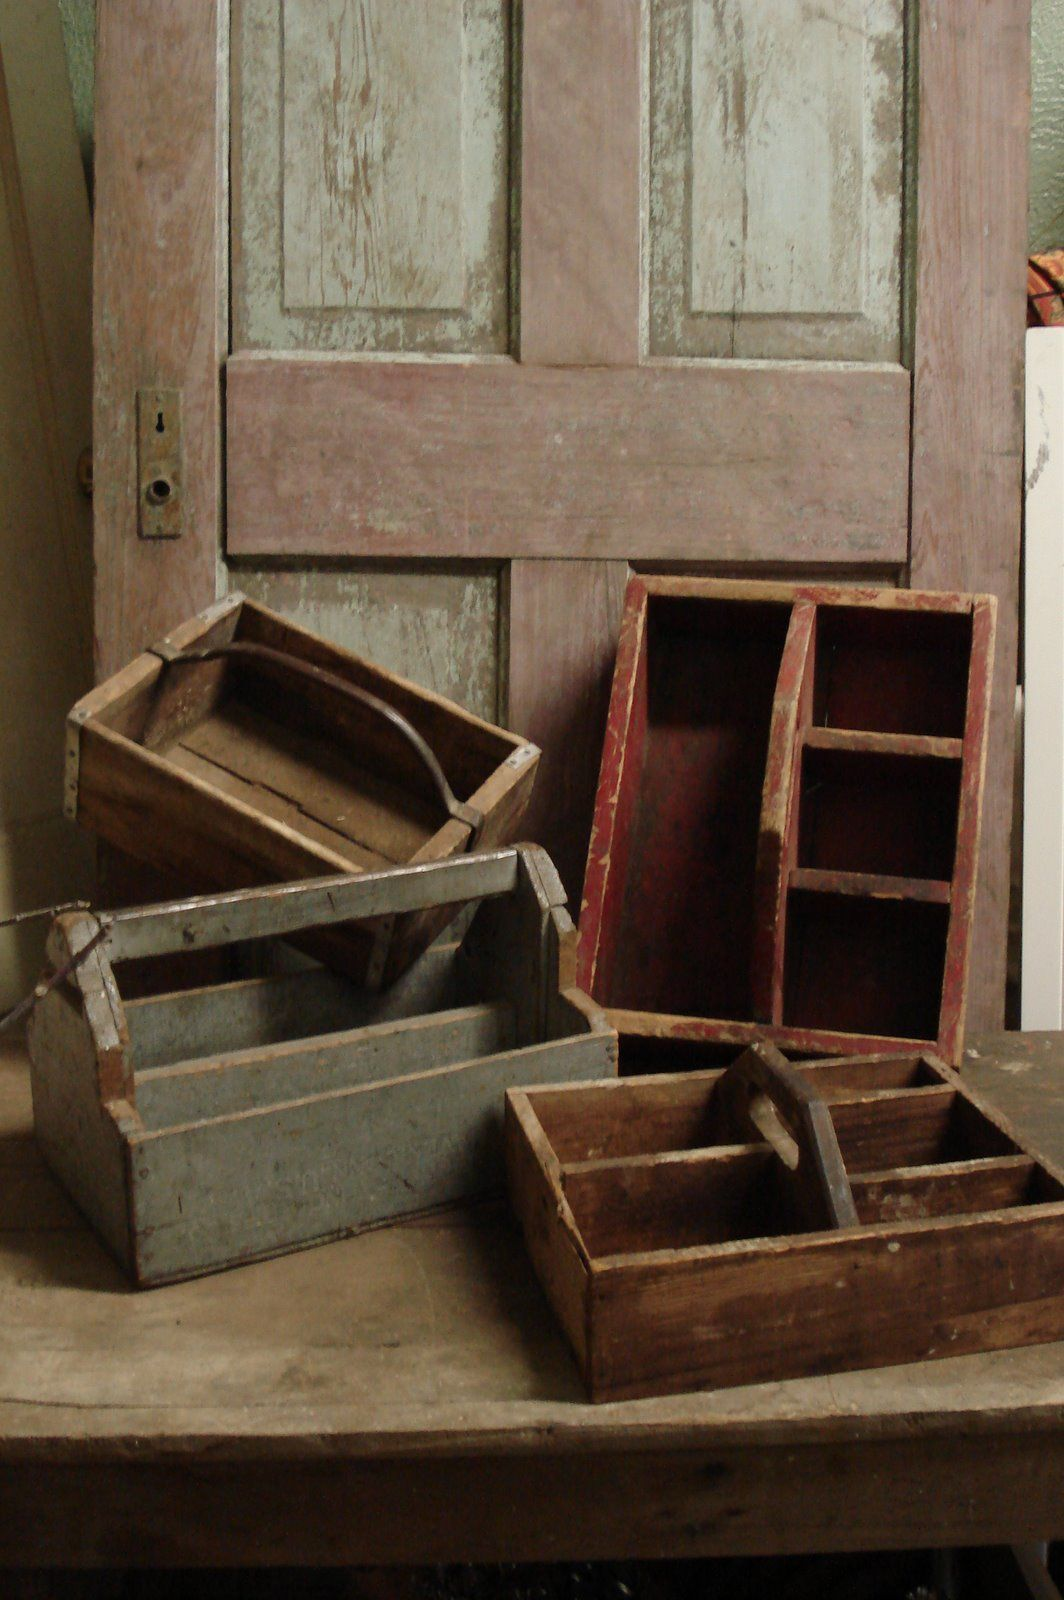 Large New Wooden Storage Box Diy Crates Toy Boxes Set: Wooden Boxes....go Crazy!!!! :) We Need To Get Larry Going